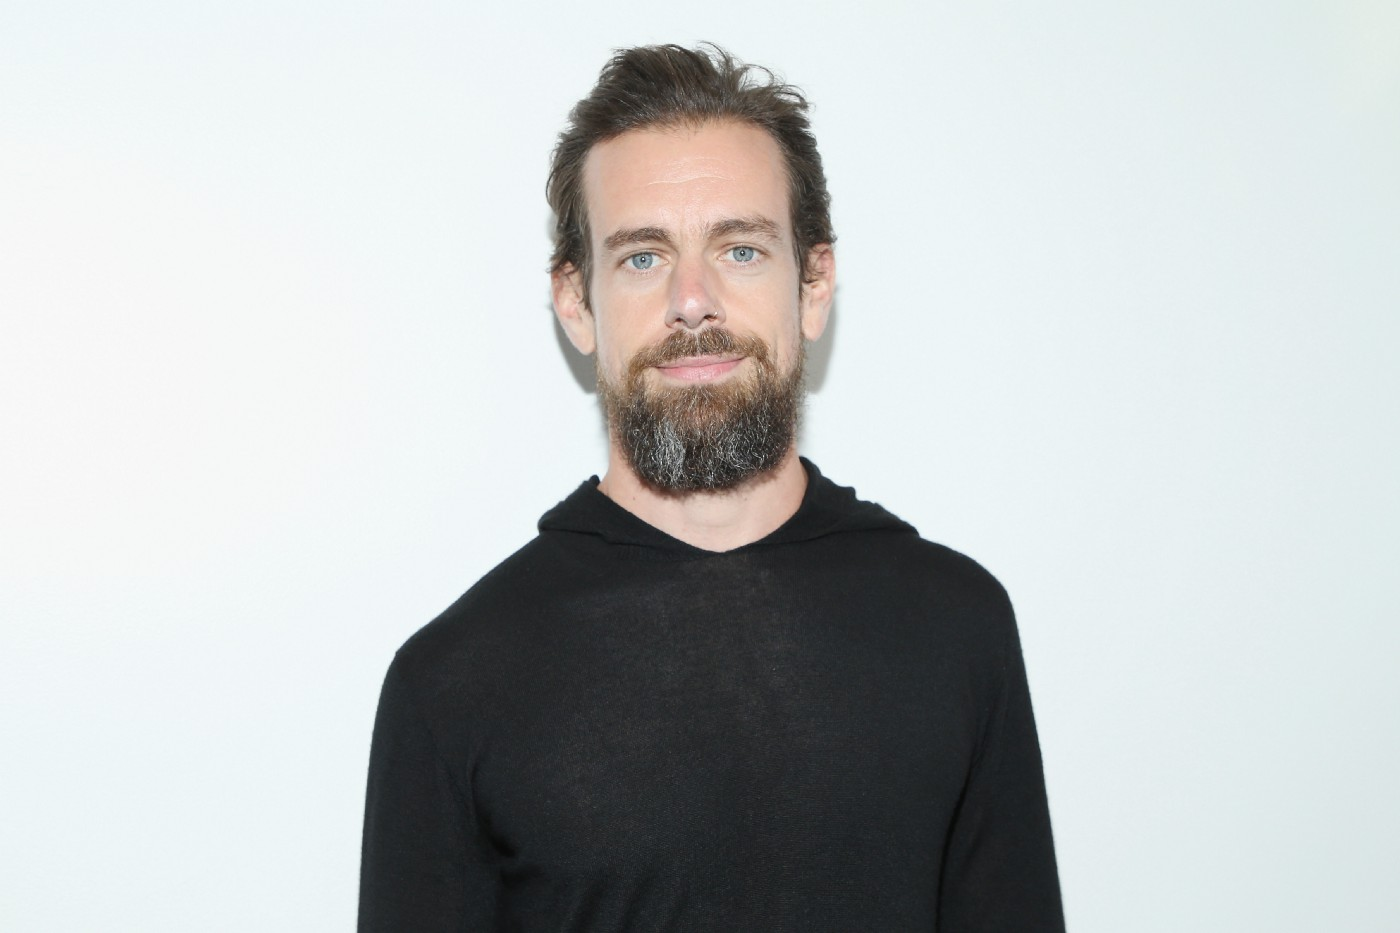 A close up of Twitter's CEO, Jack Dorsey against a white background.